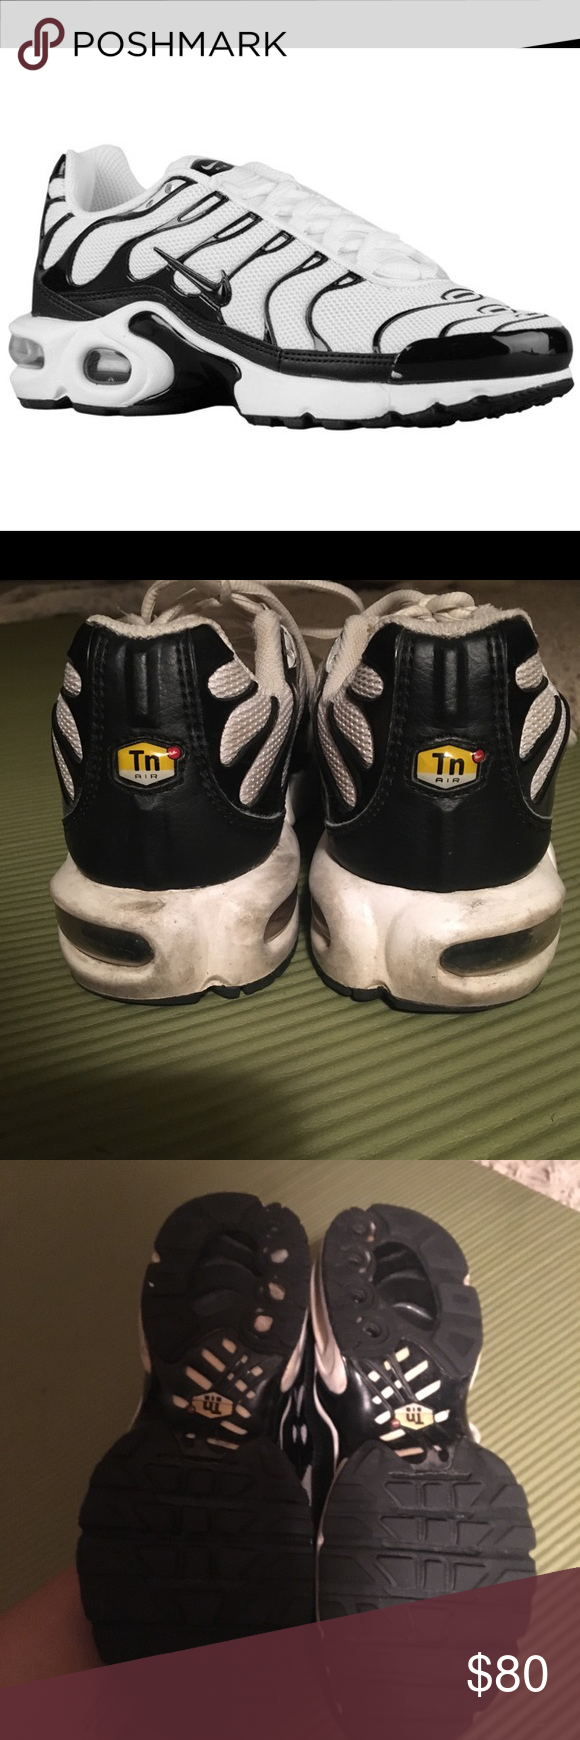 61eb7d909 RARE black and white Nike air max tn sneakers Deadstock color scheme nike  tns. Retail  180. Worn and has small defects. Little dirty but it can be  washed.